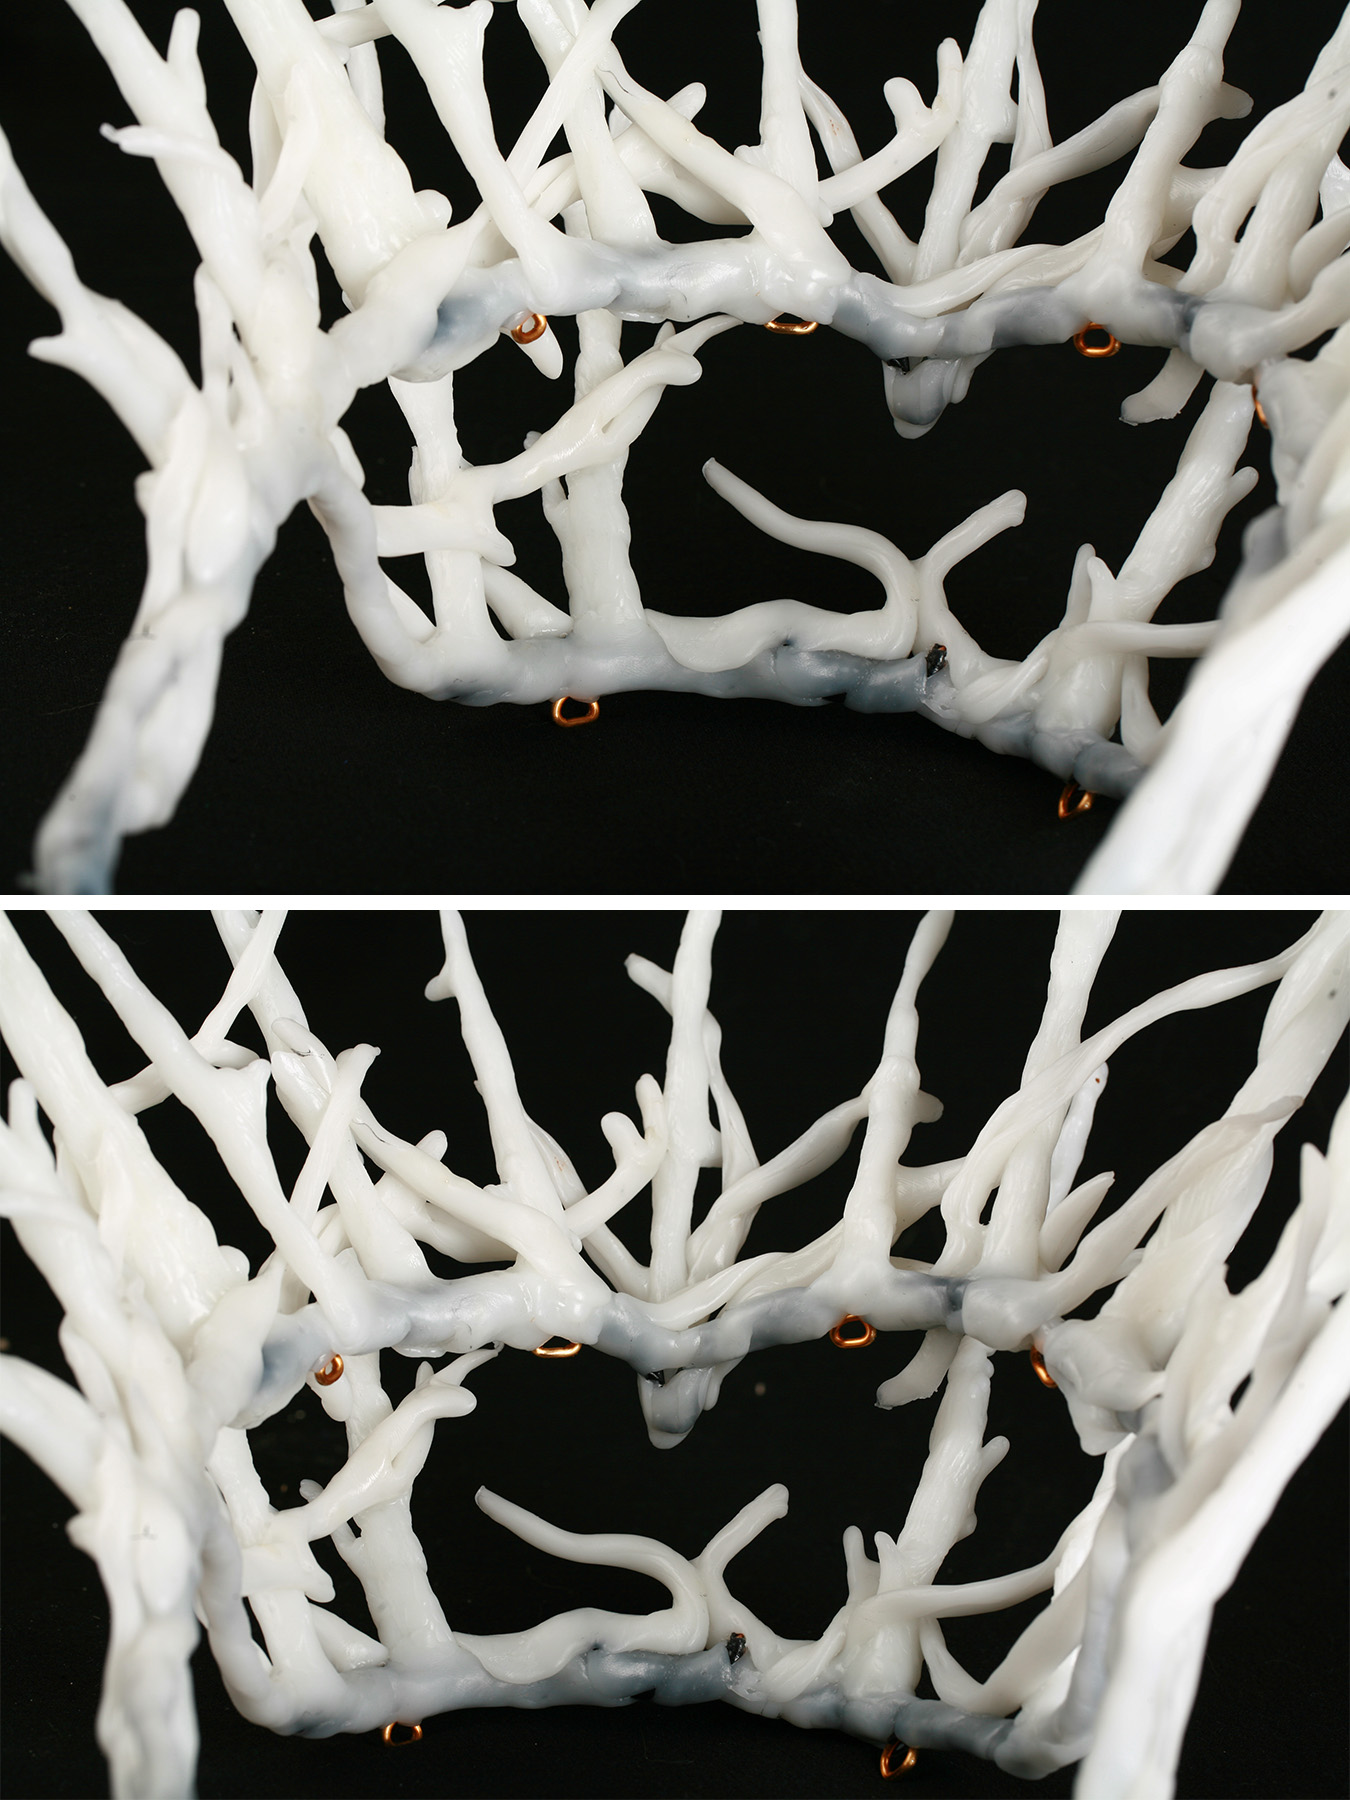 A 2 part image showing multiple views of a white plastic replica of Thranduil's crown.